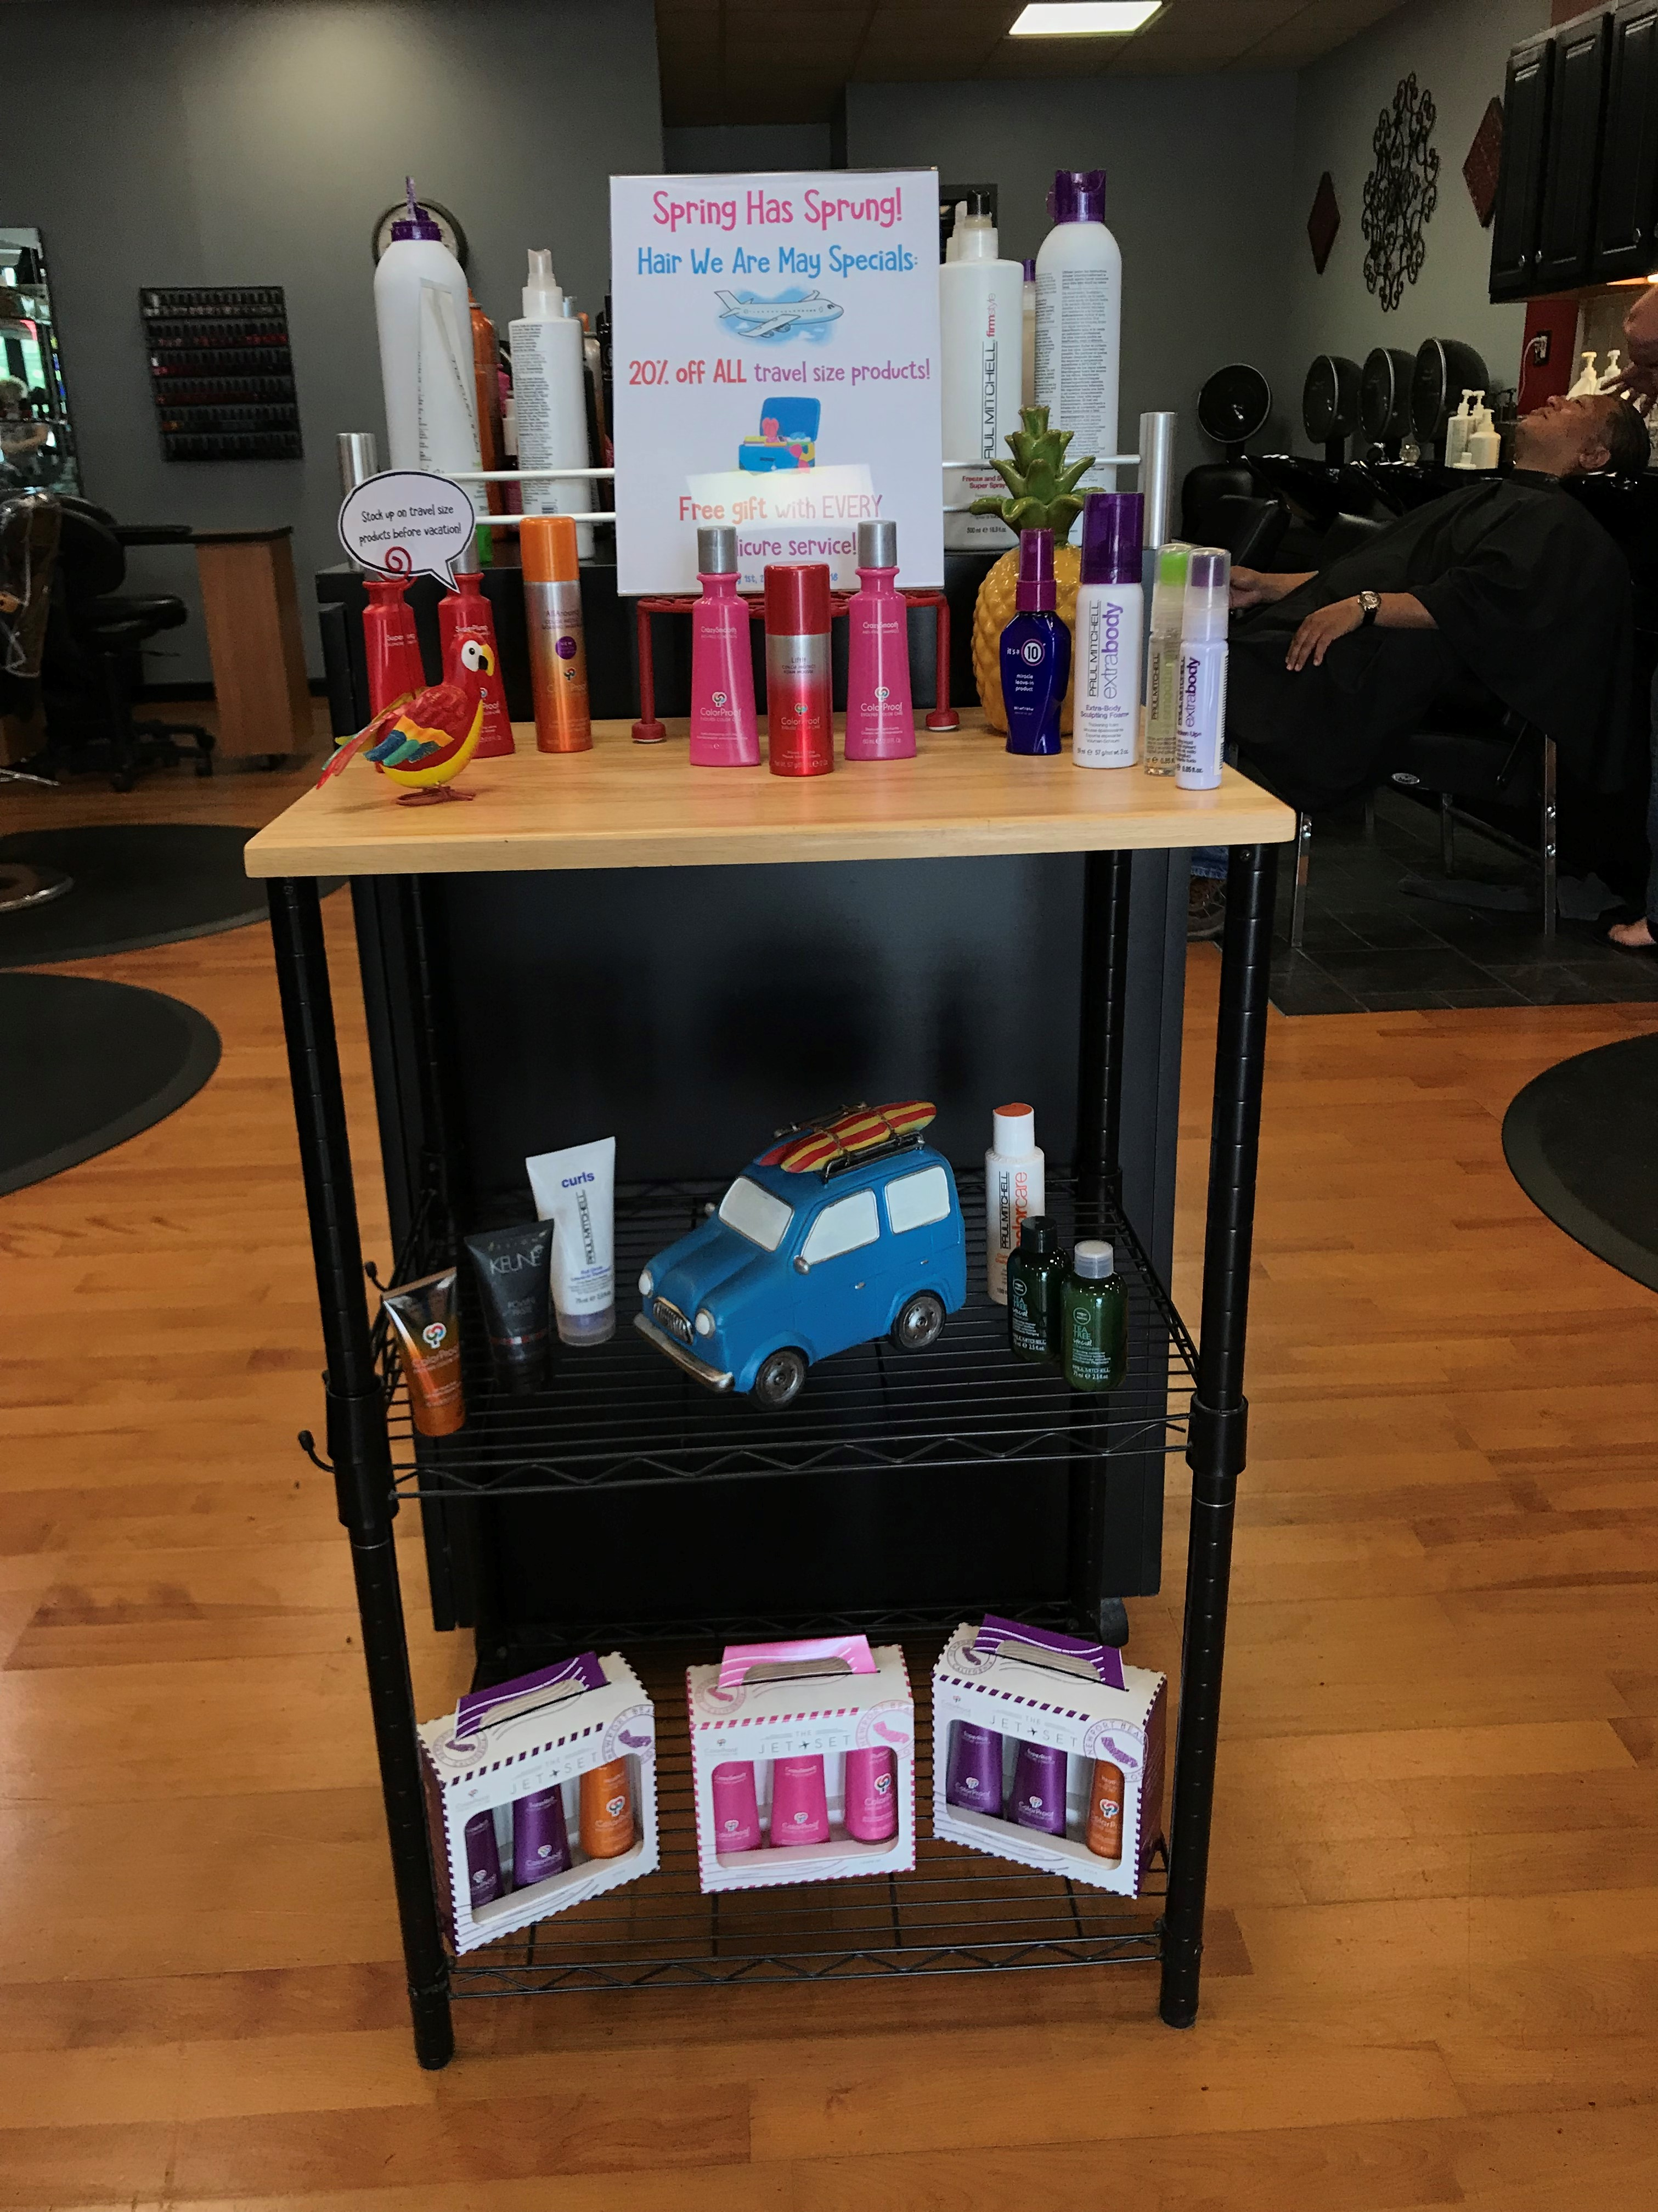 Spring Has Finally Sprung And We Have Deals Popping Up All Over Hair